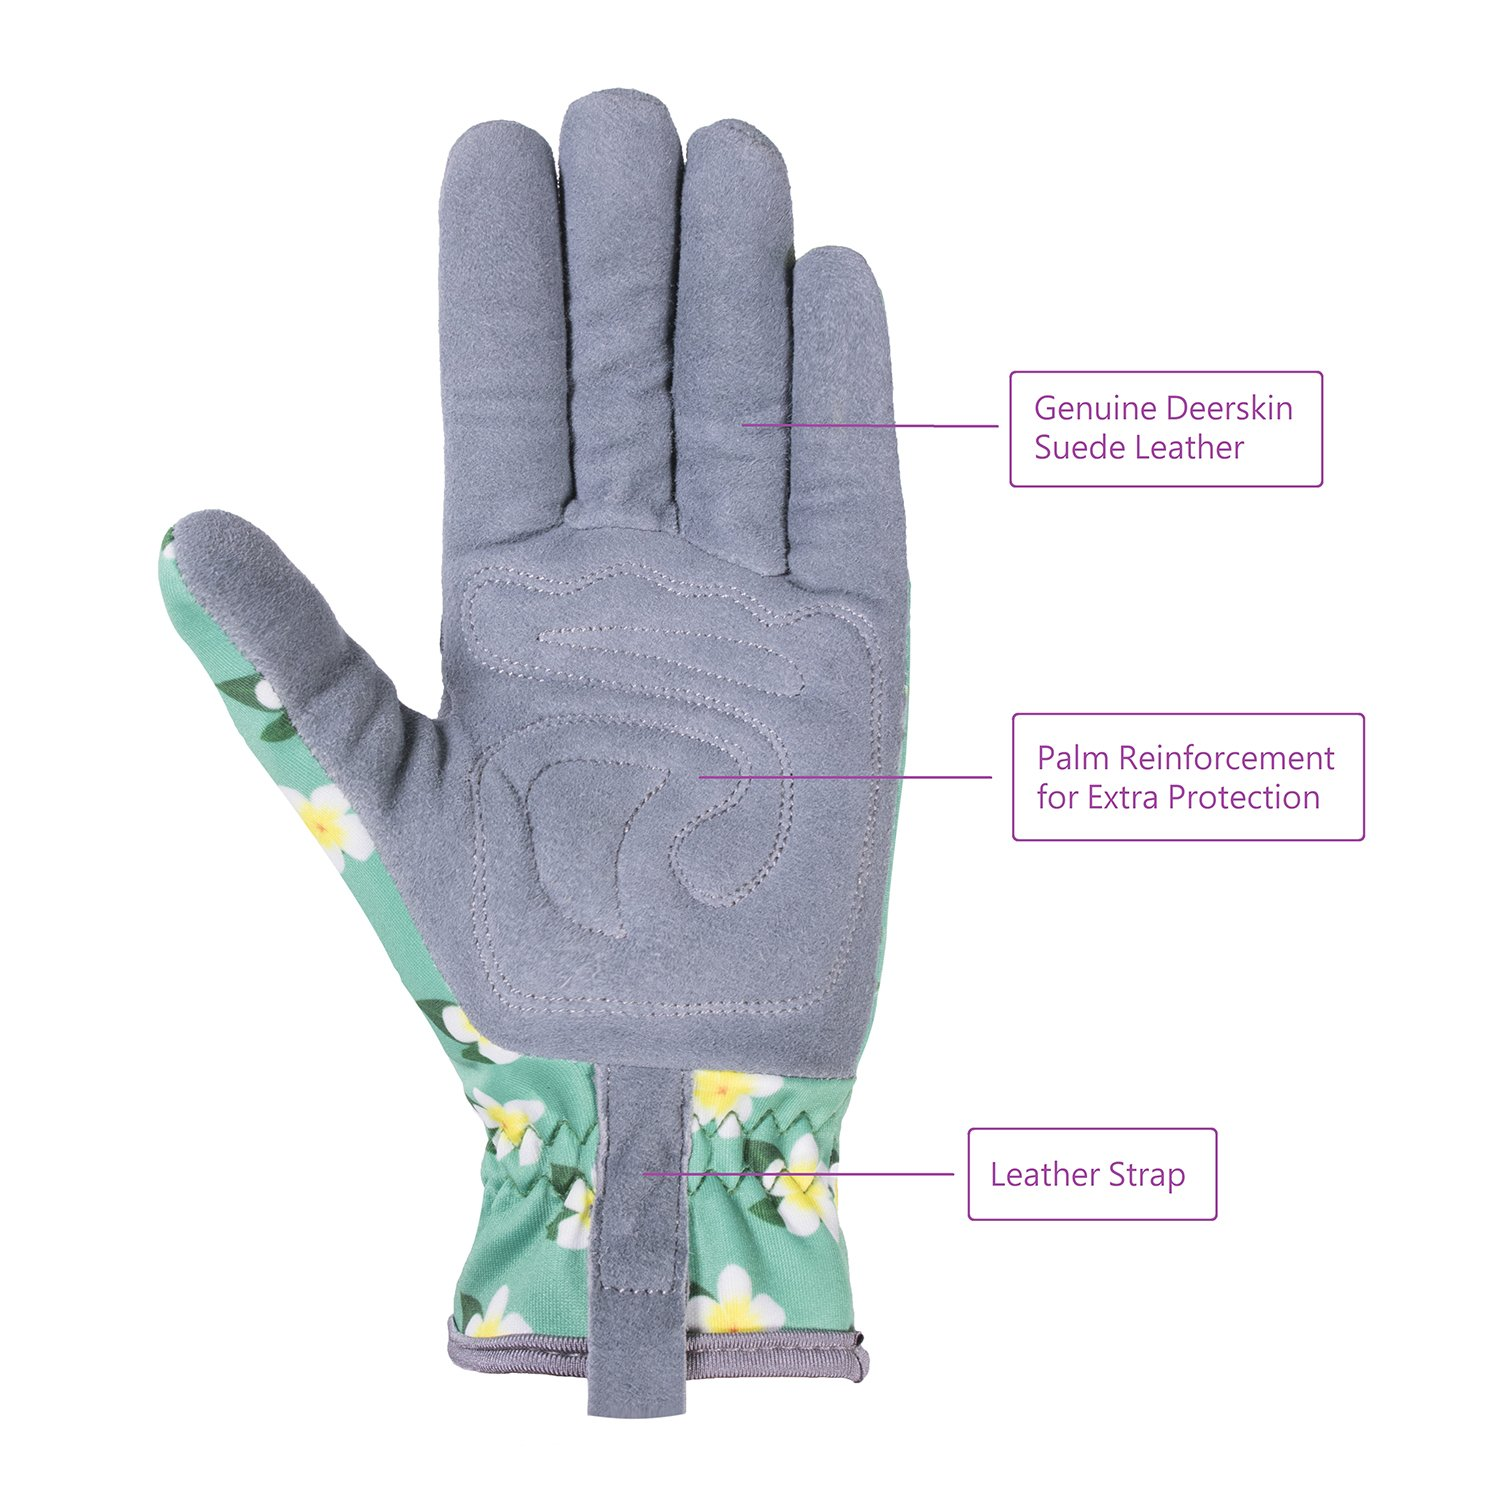 SKYDEER Womens Gardening Gloves with Deerskin Leather Suede for Yard Work, Rose Pruning and Daily Work by SKYDEER (Image #3)